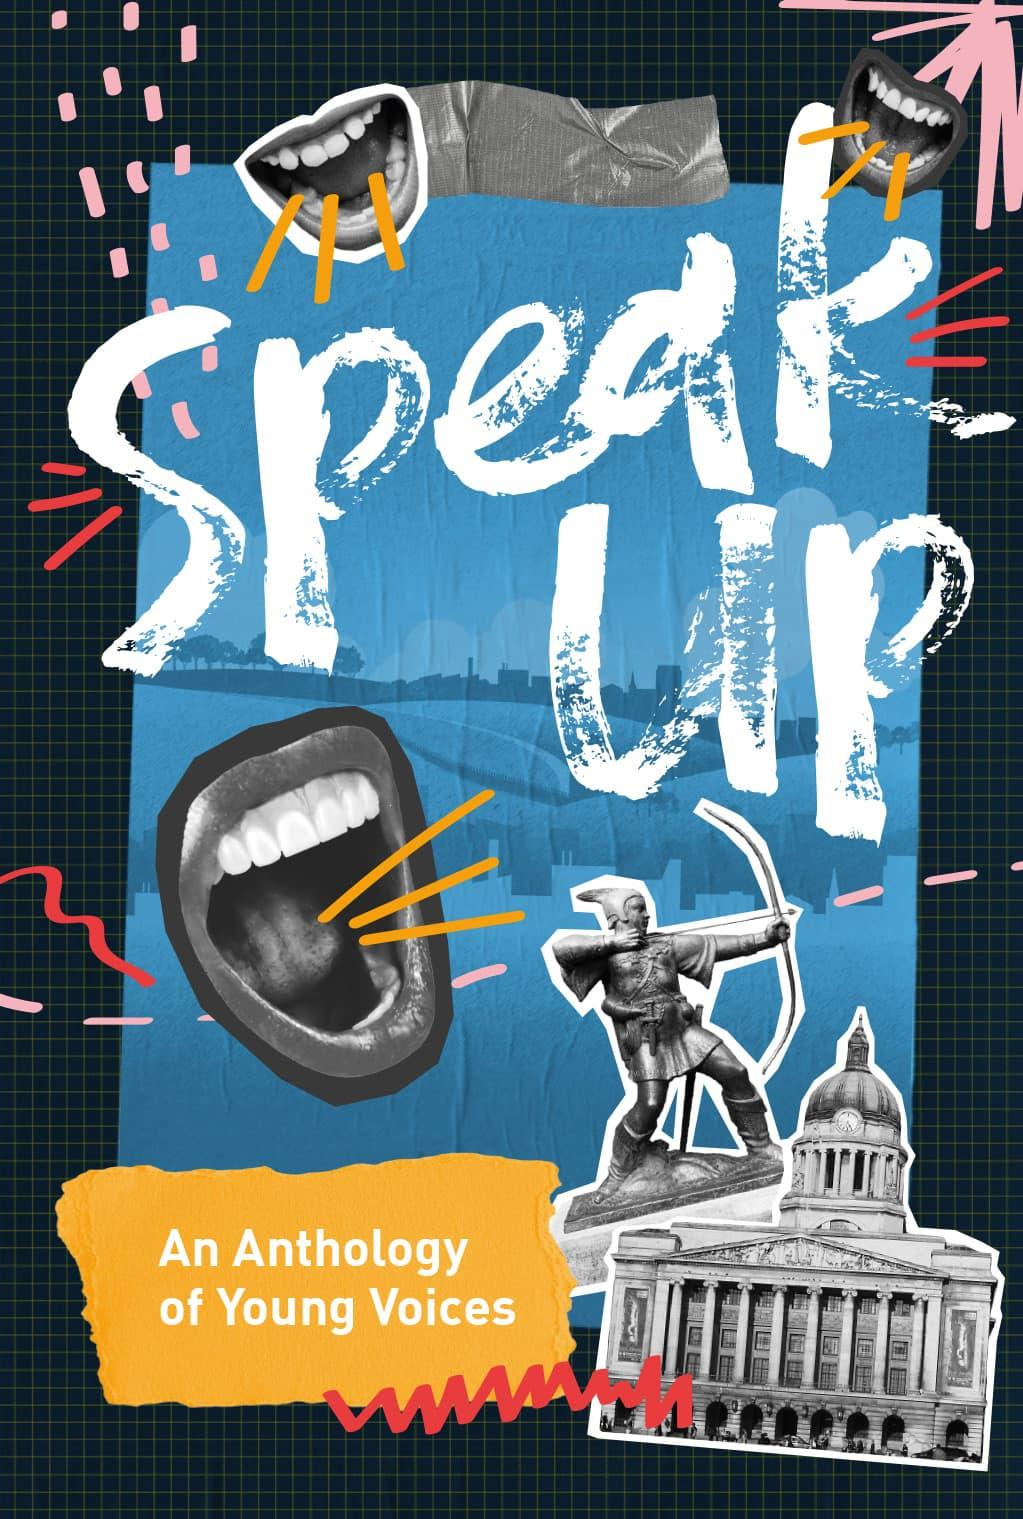 Speak Up. An anthology of young voices.